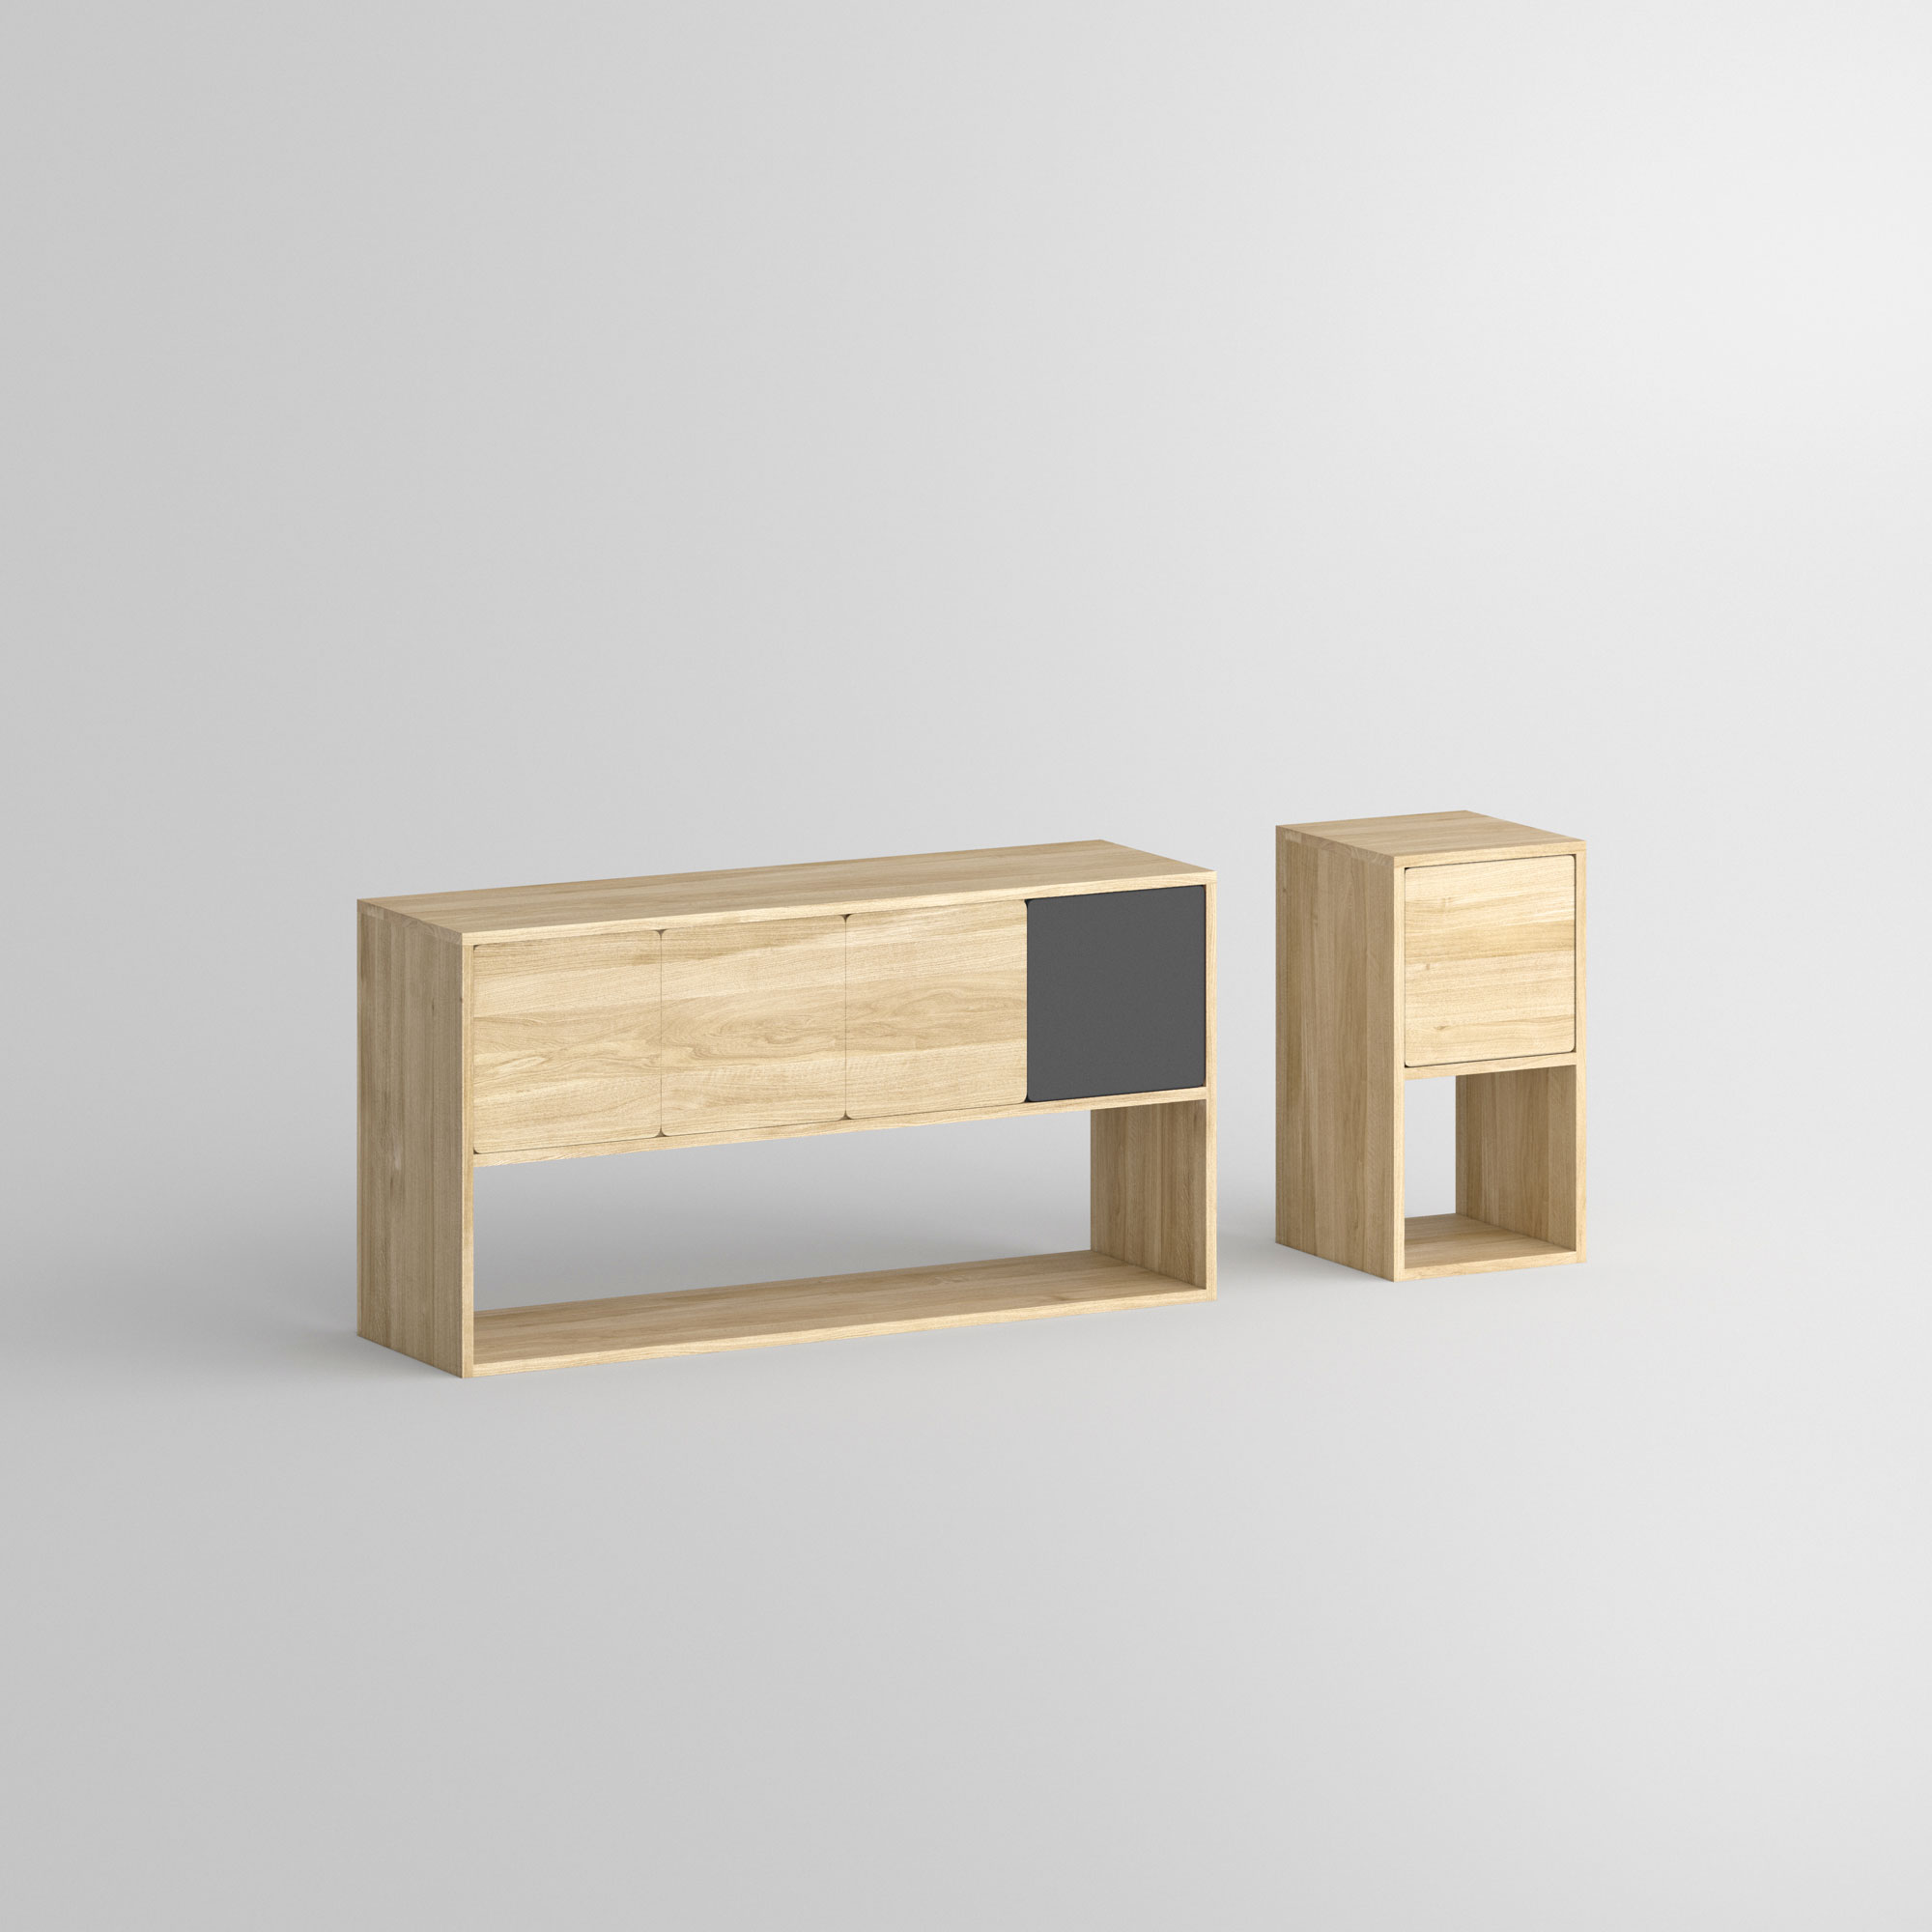 Wooden Sideboard CAVUS 1t custom made in solid wood by vitamin design